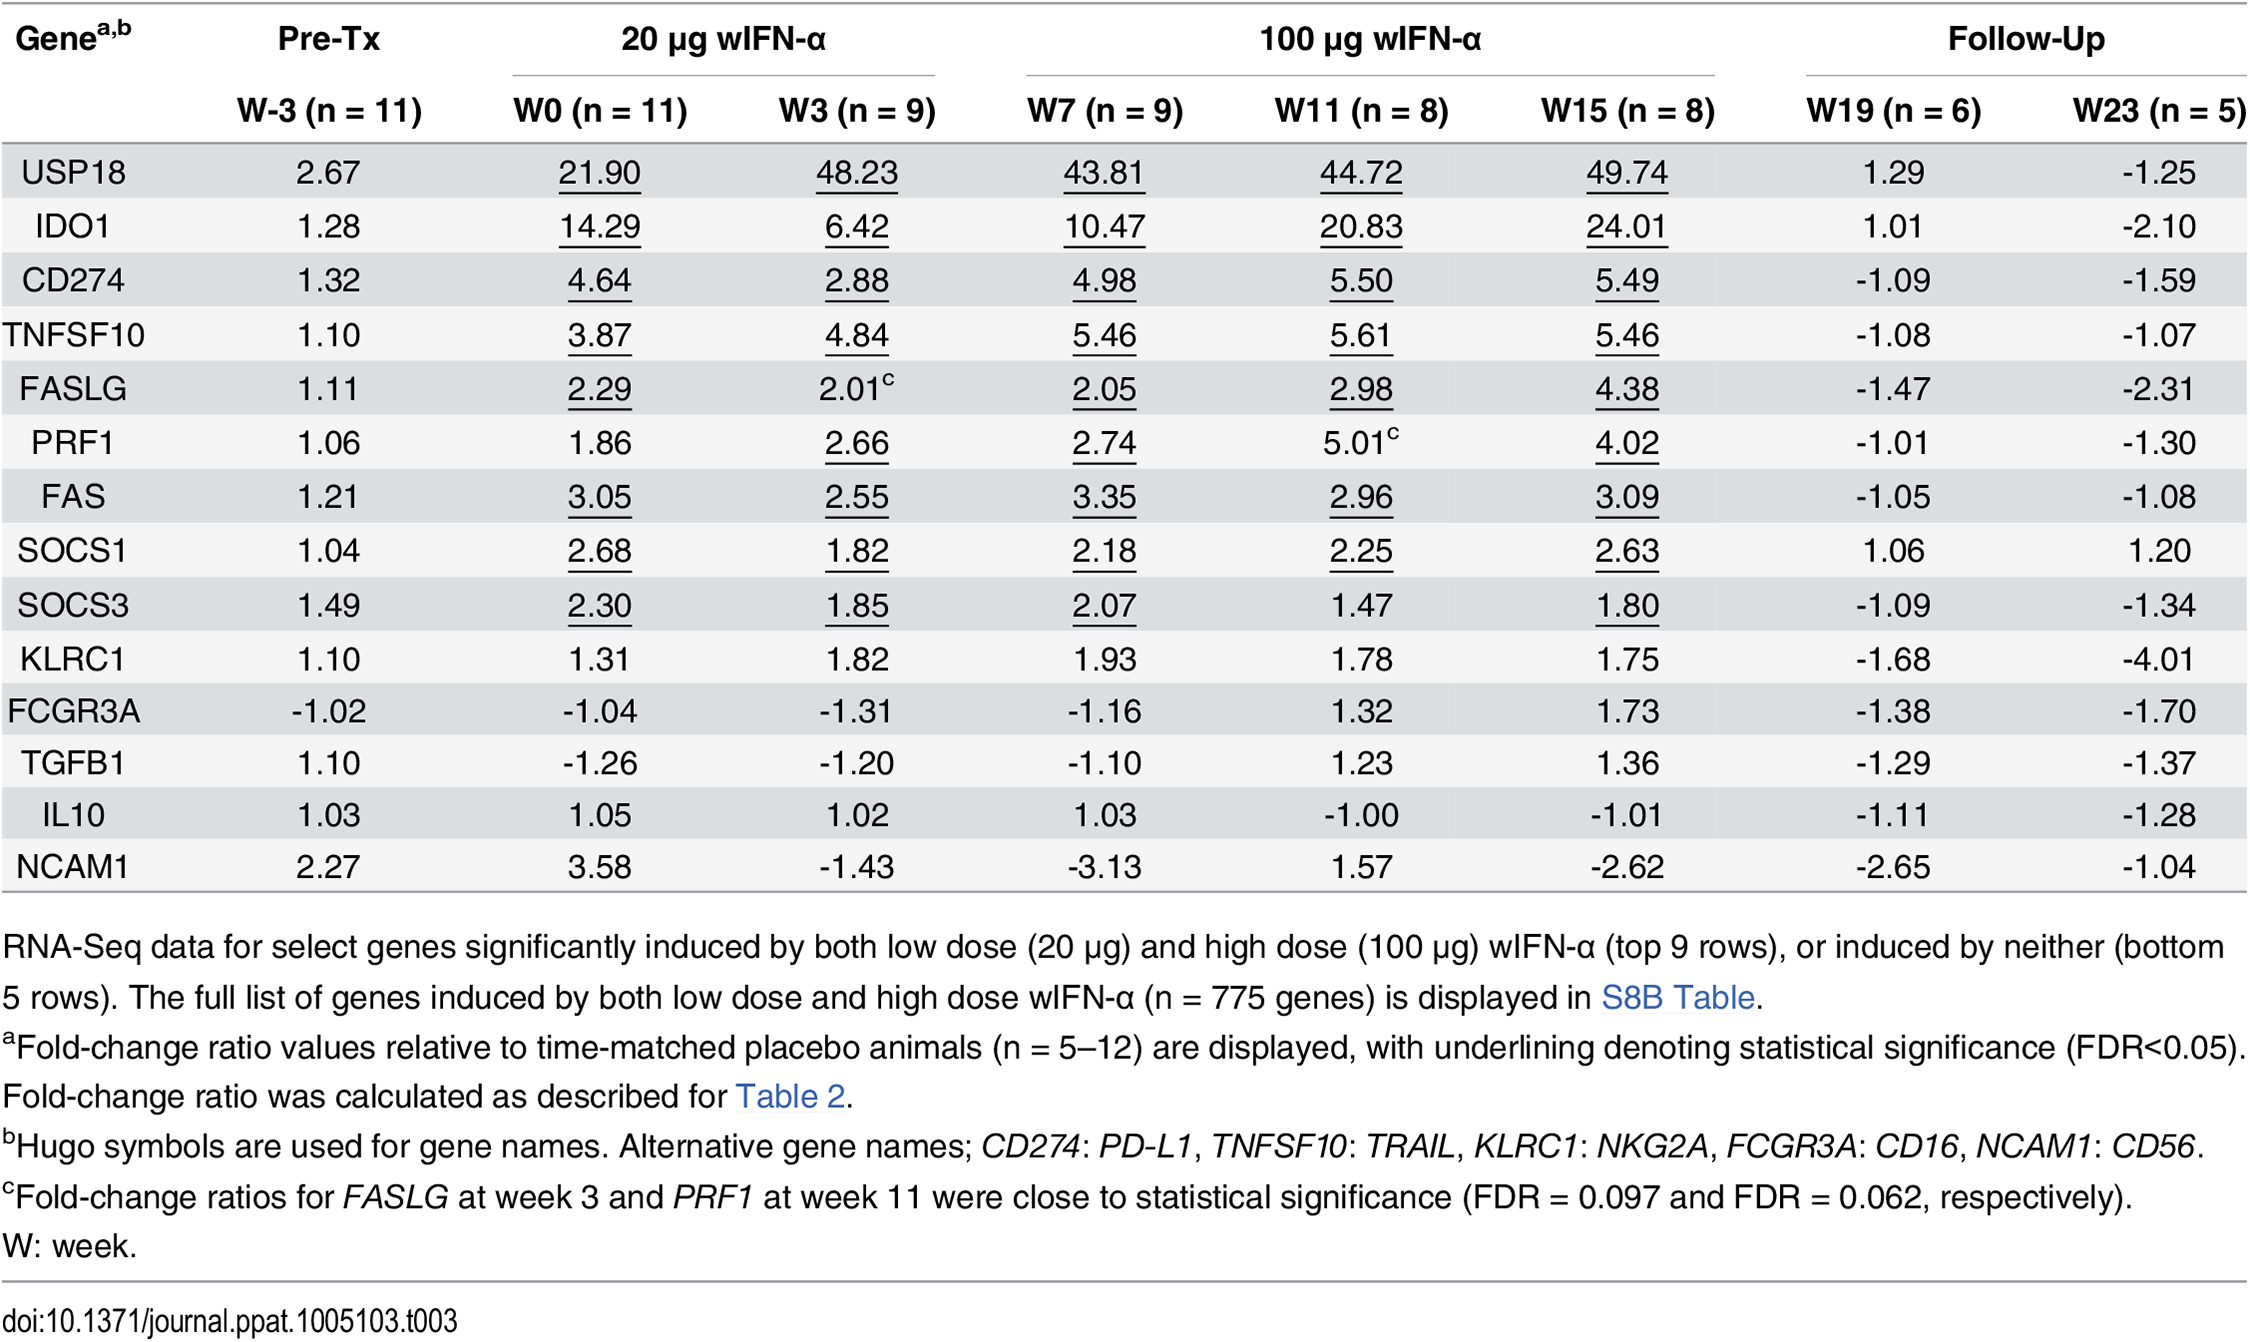 Intrahepatic expression of genes induced by both low and high dose wIFN-α or induced by neither.